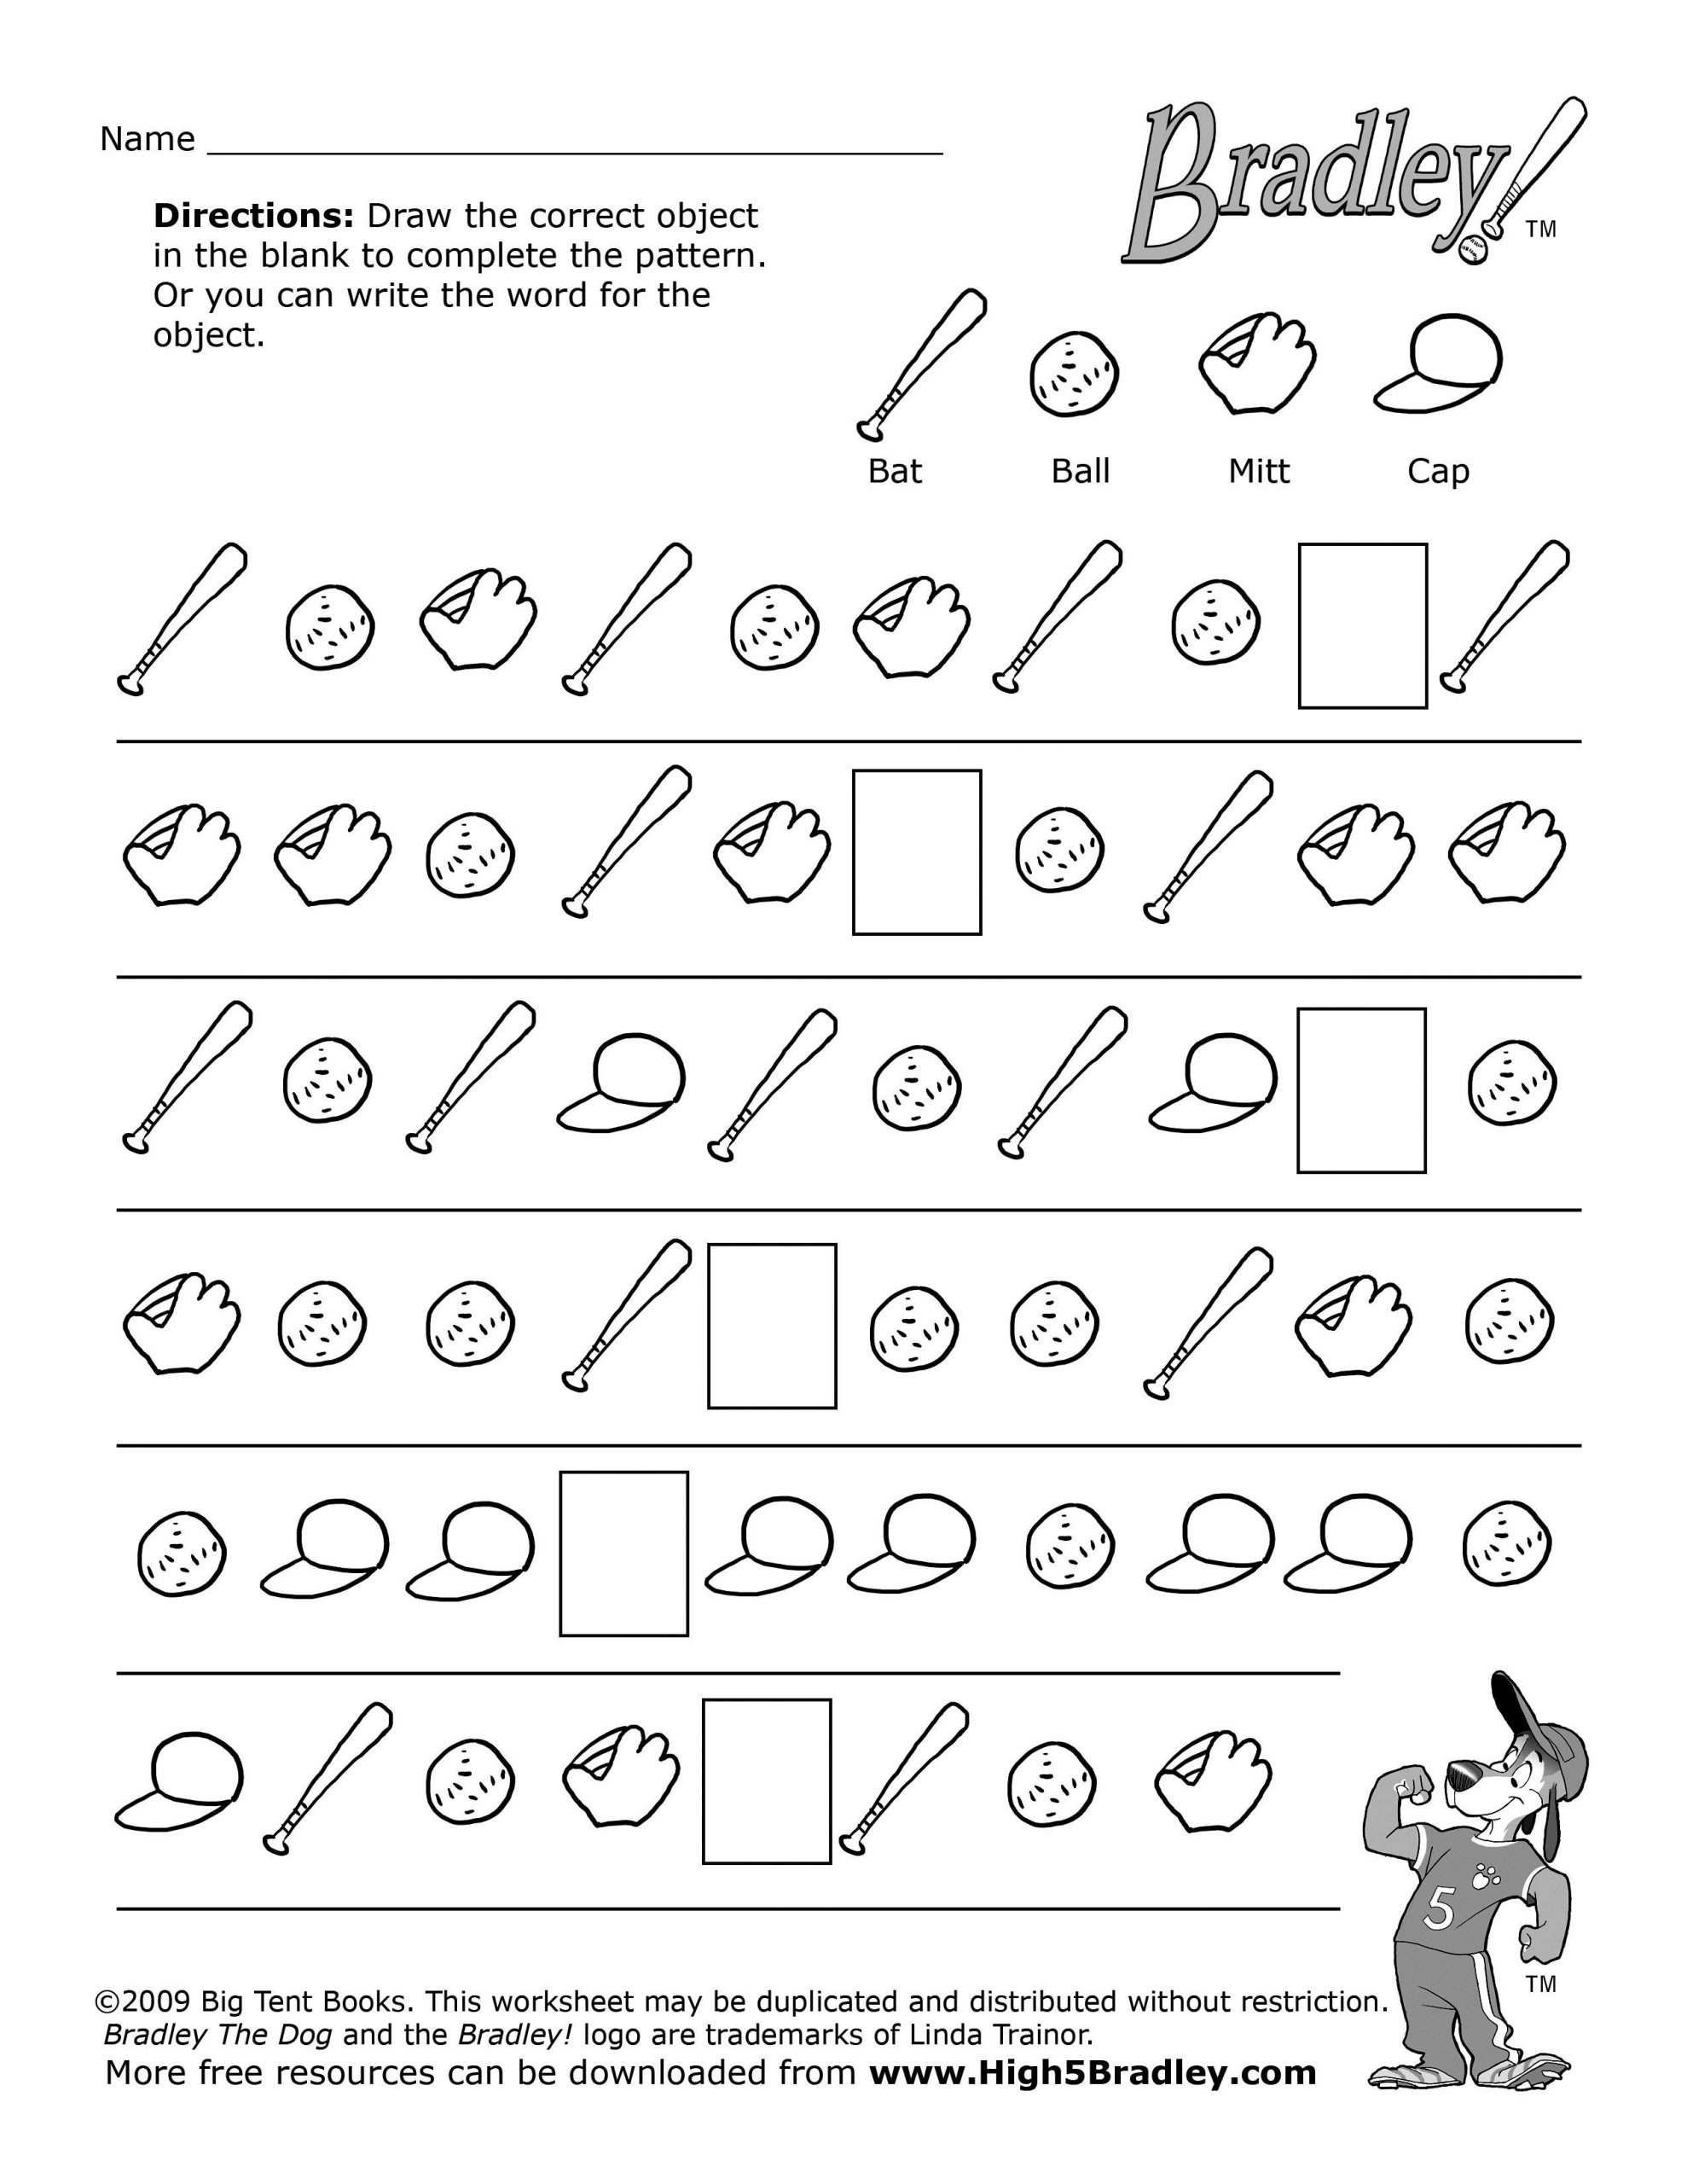 Word Problem Worksheets 1st Grade 1st Grade Math Repeating Patterns1 2 550—3 300 Pixels